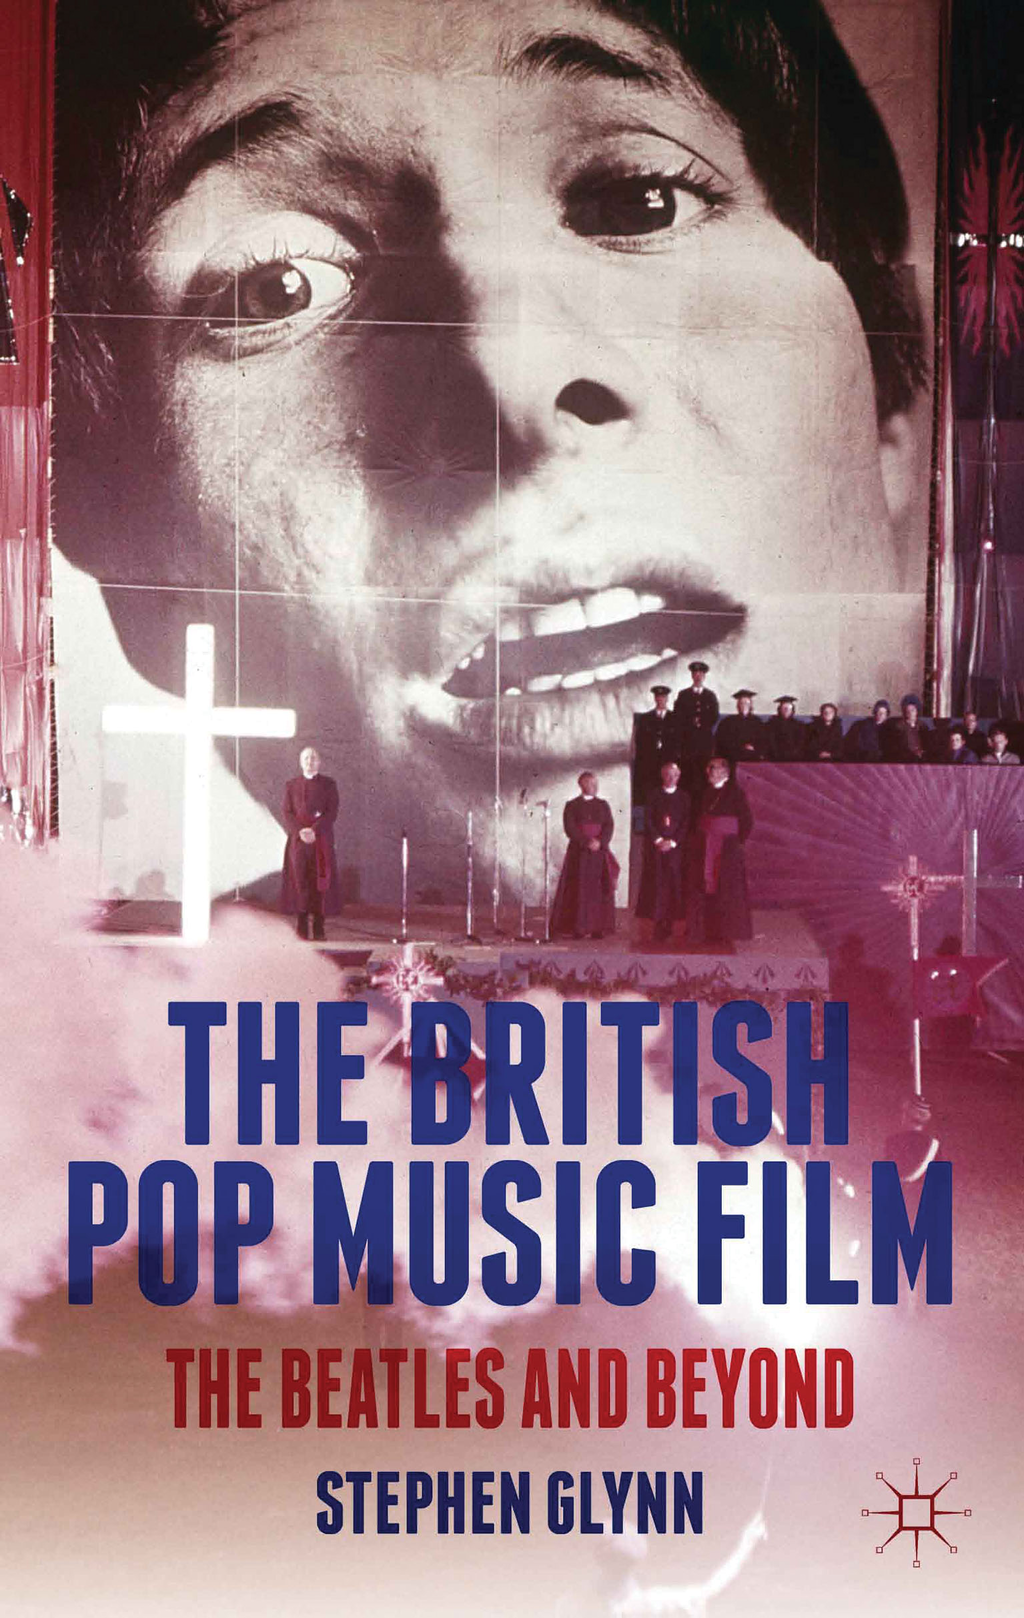 The British Pop Music Film The Beatles and Beyond